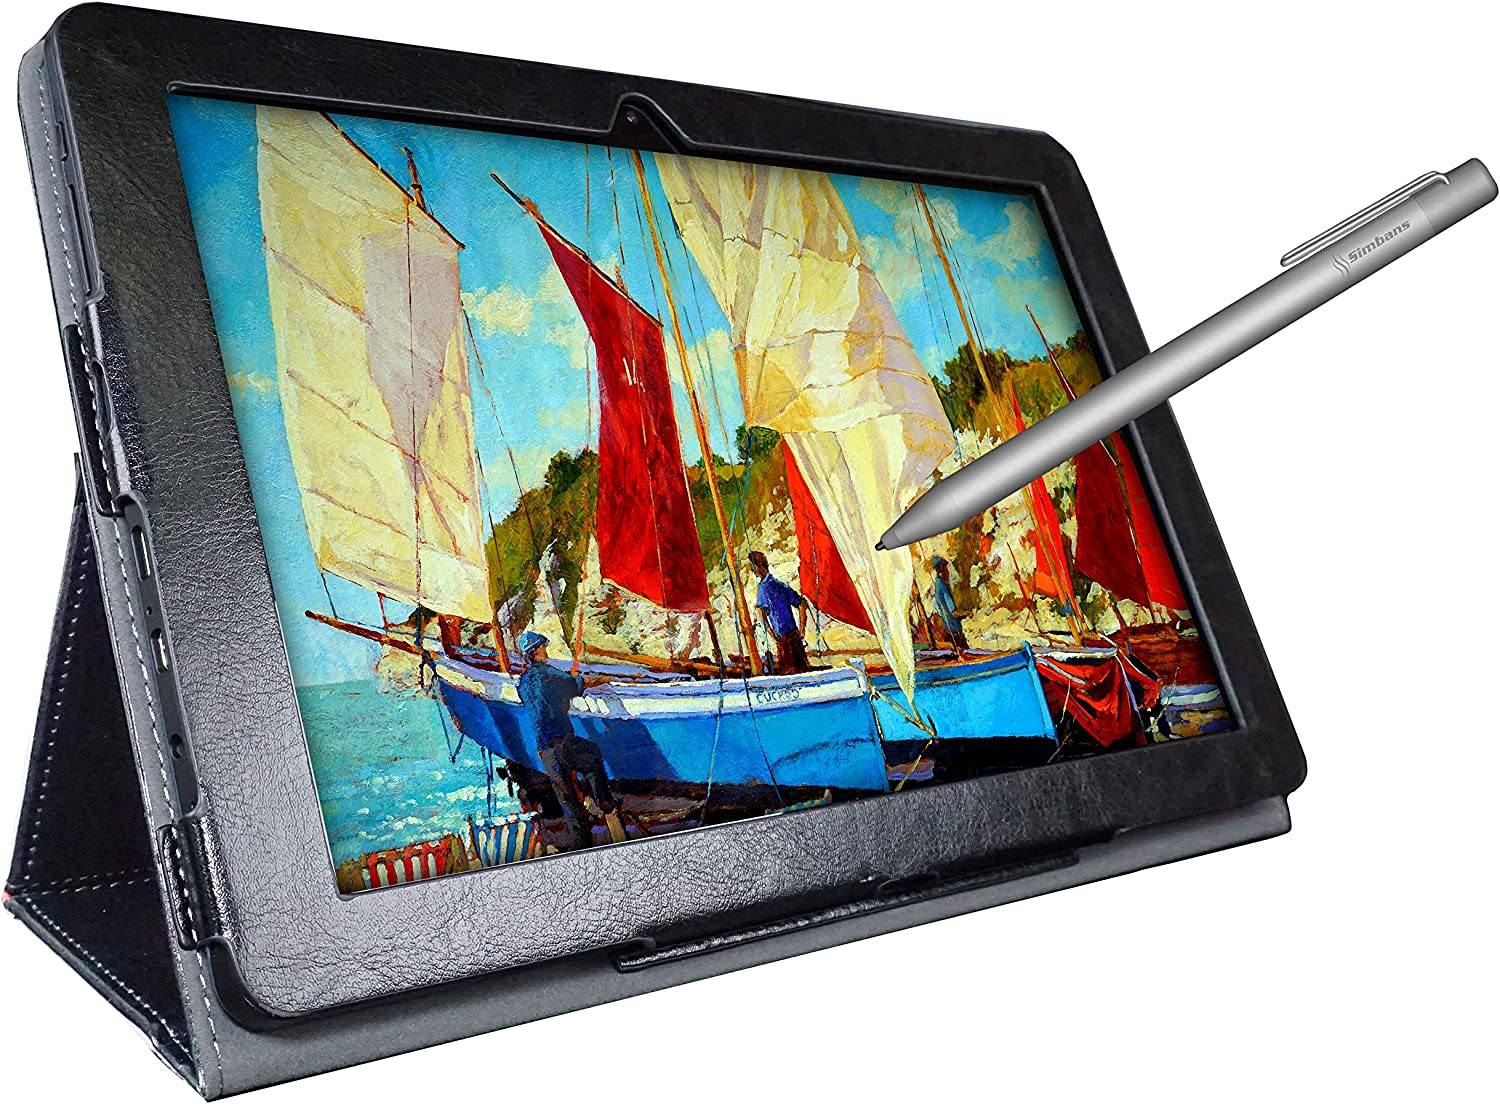 [4 Bonus Items] Simbans PicassoTab 10 Inch Drawing Tablet and Stylus Pen, 2GB, 32GB, Android 9 Pie, Best Gift for Beginner Graphic Artist Boy, Girl, HDMI, USB, GPS, Bluetooth, WiFi - P92: Computers & Accessories